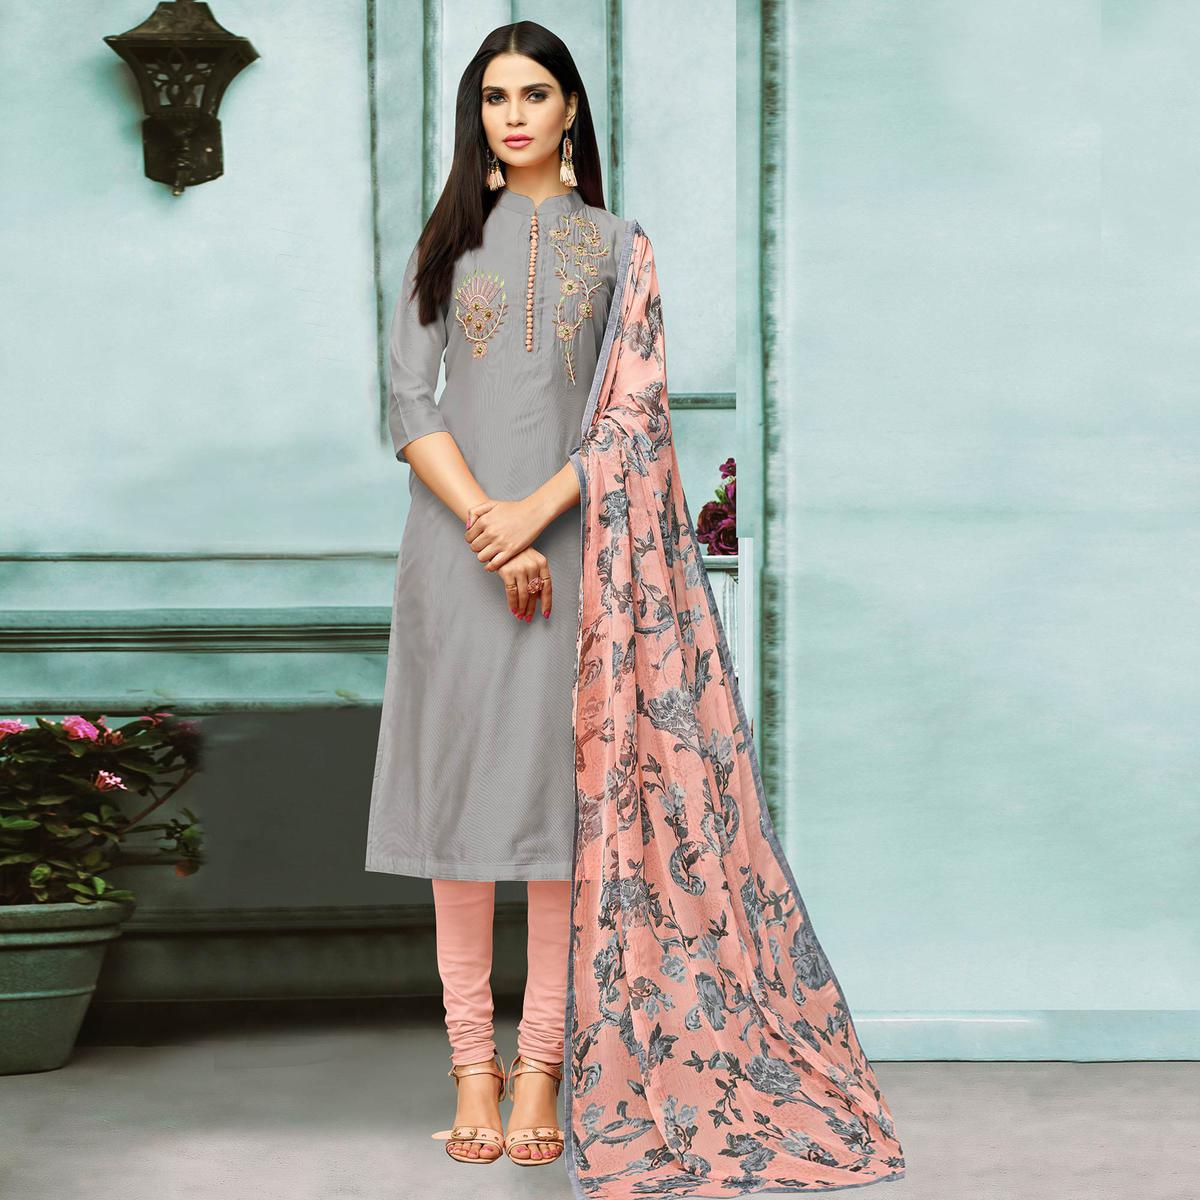 afe5d12aa2 Buy Gleaming Gray Colored Partywear Embroidered Chanderi Silk Suit For womens  online India, Best Prices, Reviews - Peachmode